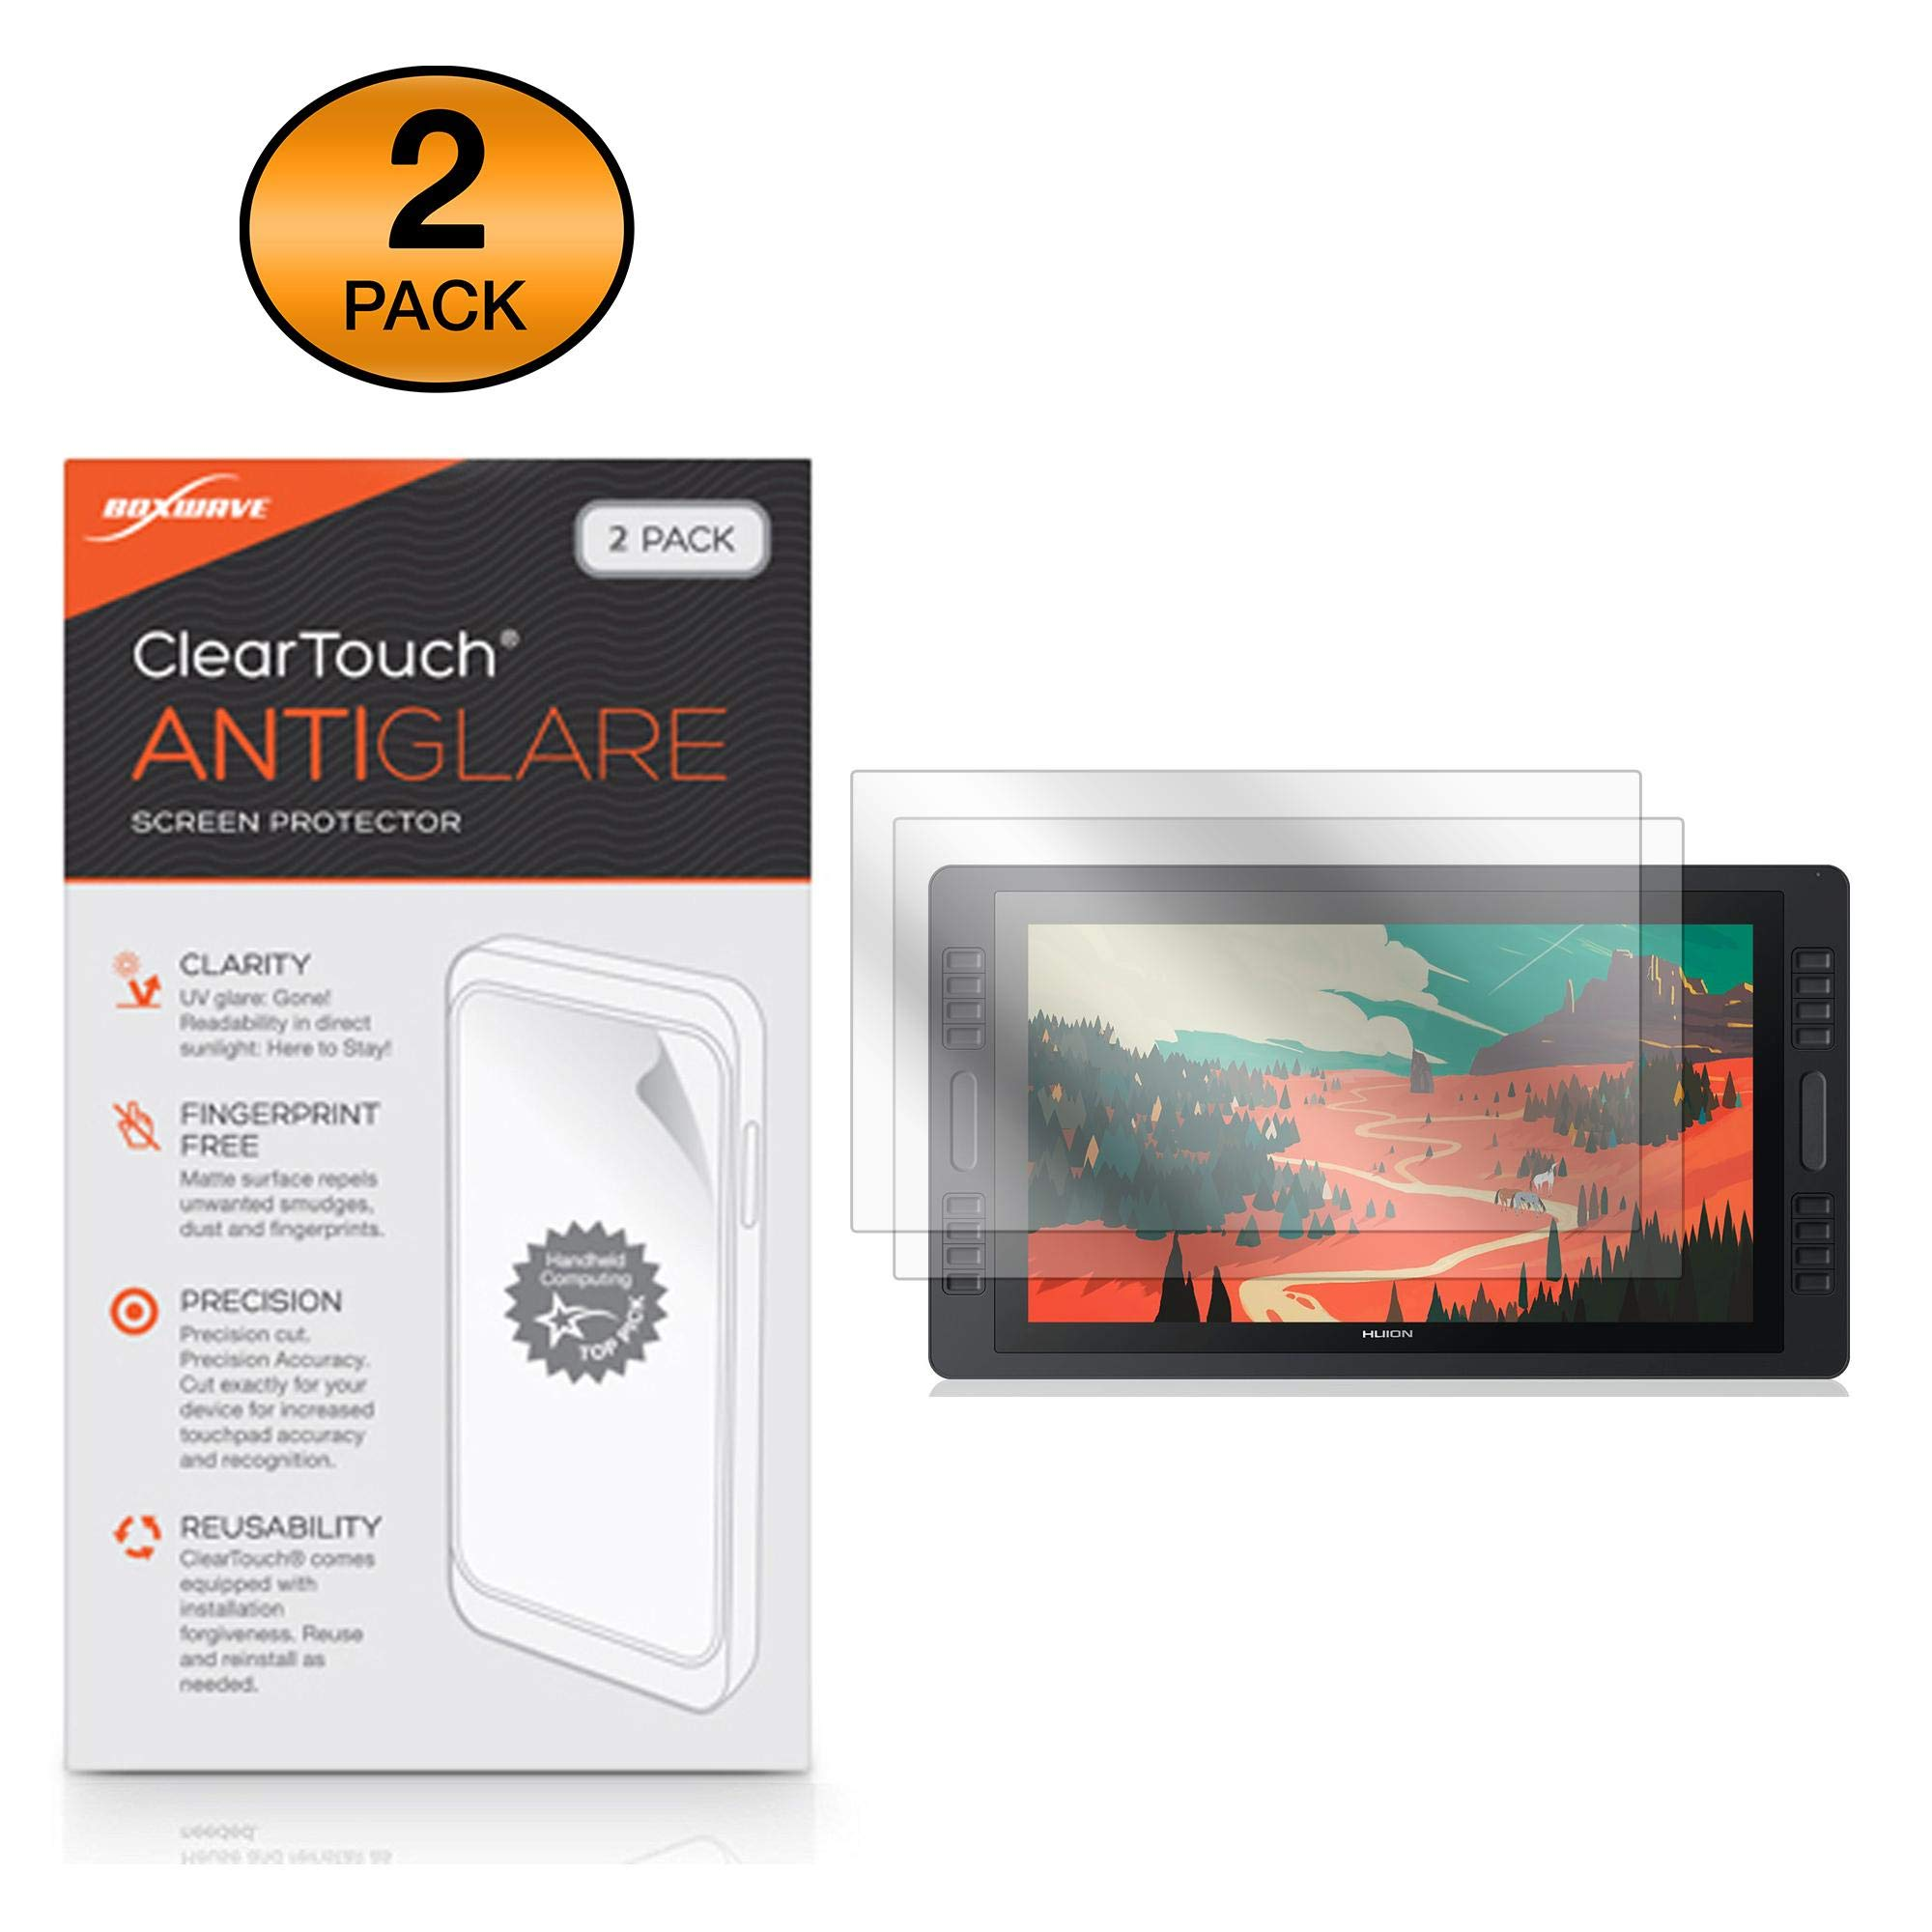 BoxWave Huion KAMVAS PRO 22 Screen Protector, [ClearTouch Anti-Glare (2-Pack)] Anti-Fingerprint Matte Film Skin for Huion KAMVAS PRO 22